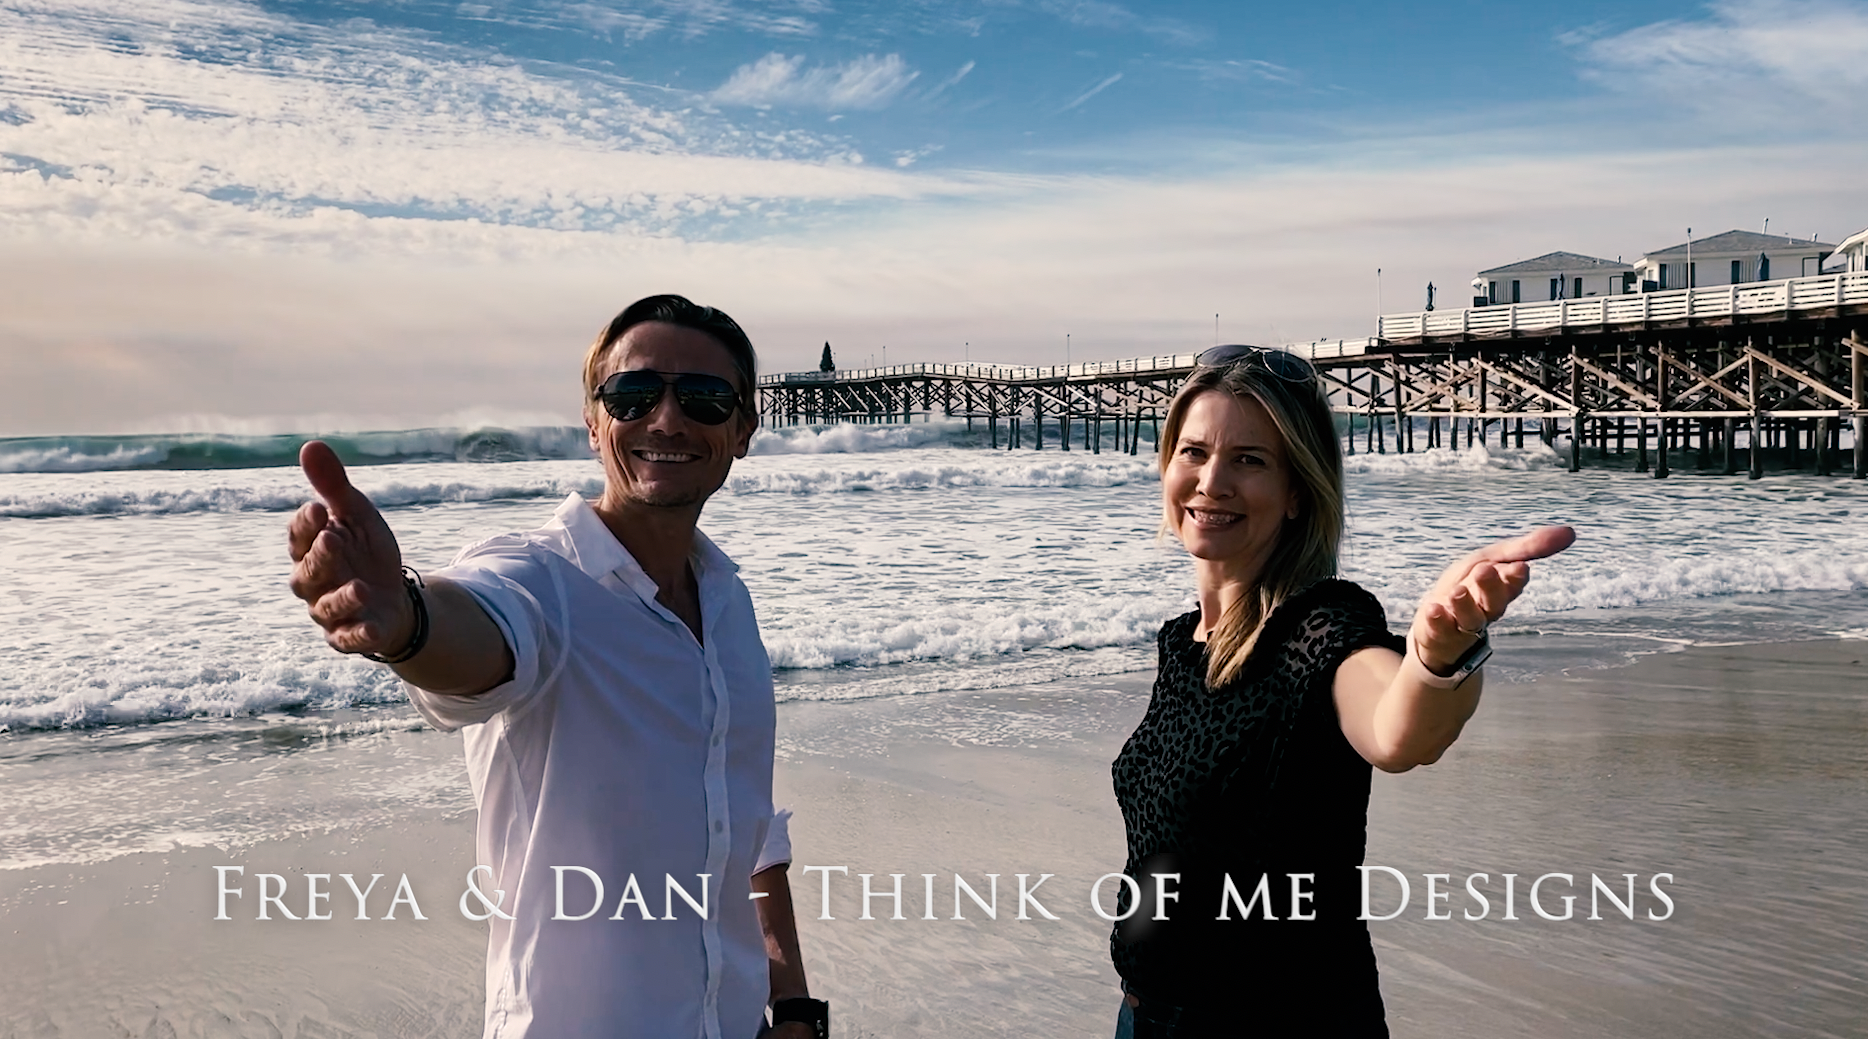 Above: Freya and Dan Kaye, owners of Think of Me Designs did their filming by the sea in California where they now live.